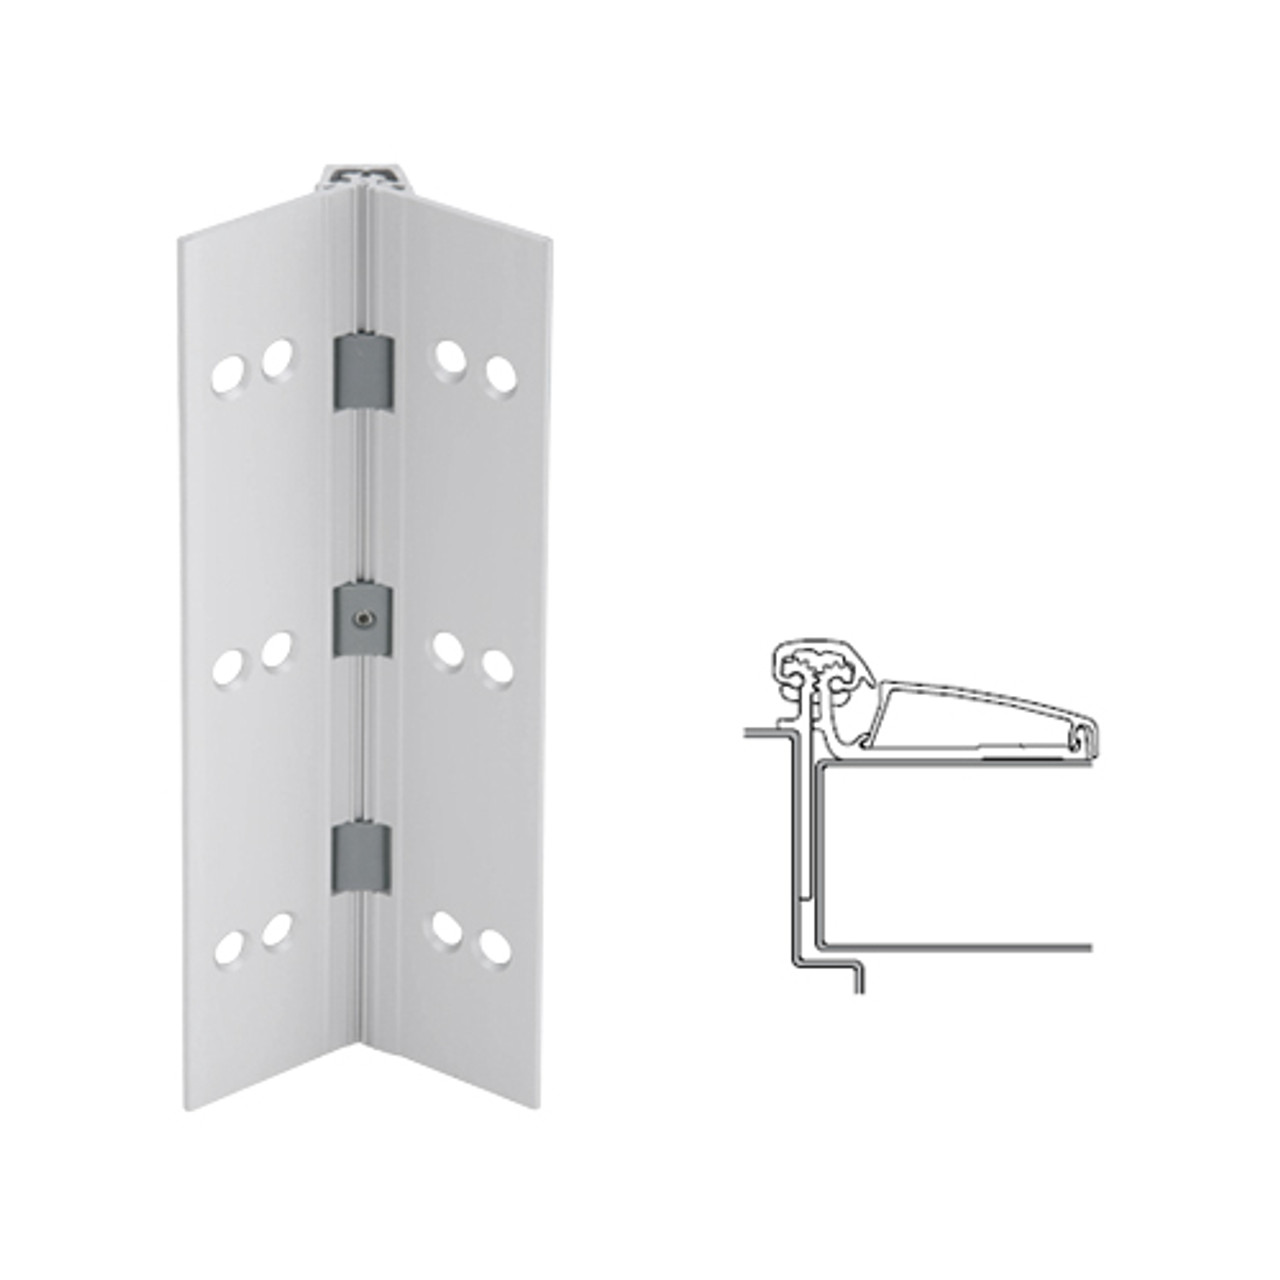 045XY-US28-120 IVES Adjustable Half Surface Continuous Geared Hinges in Satin Aluminum